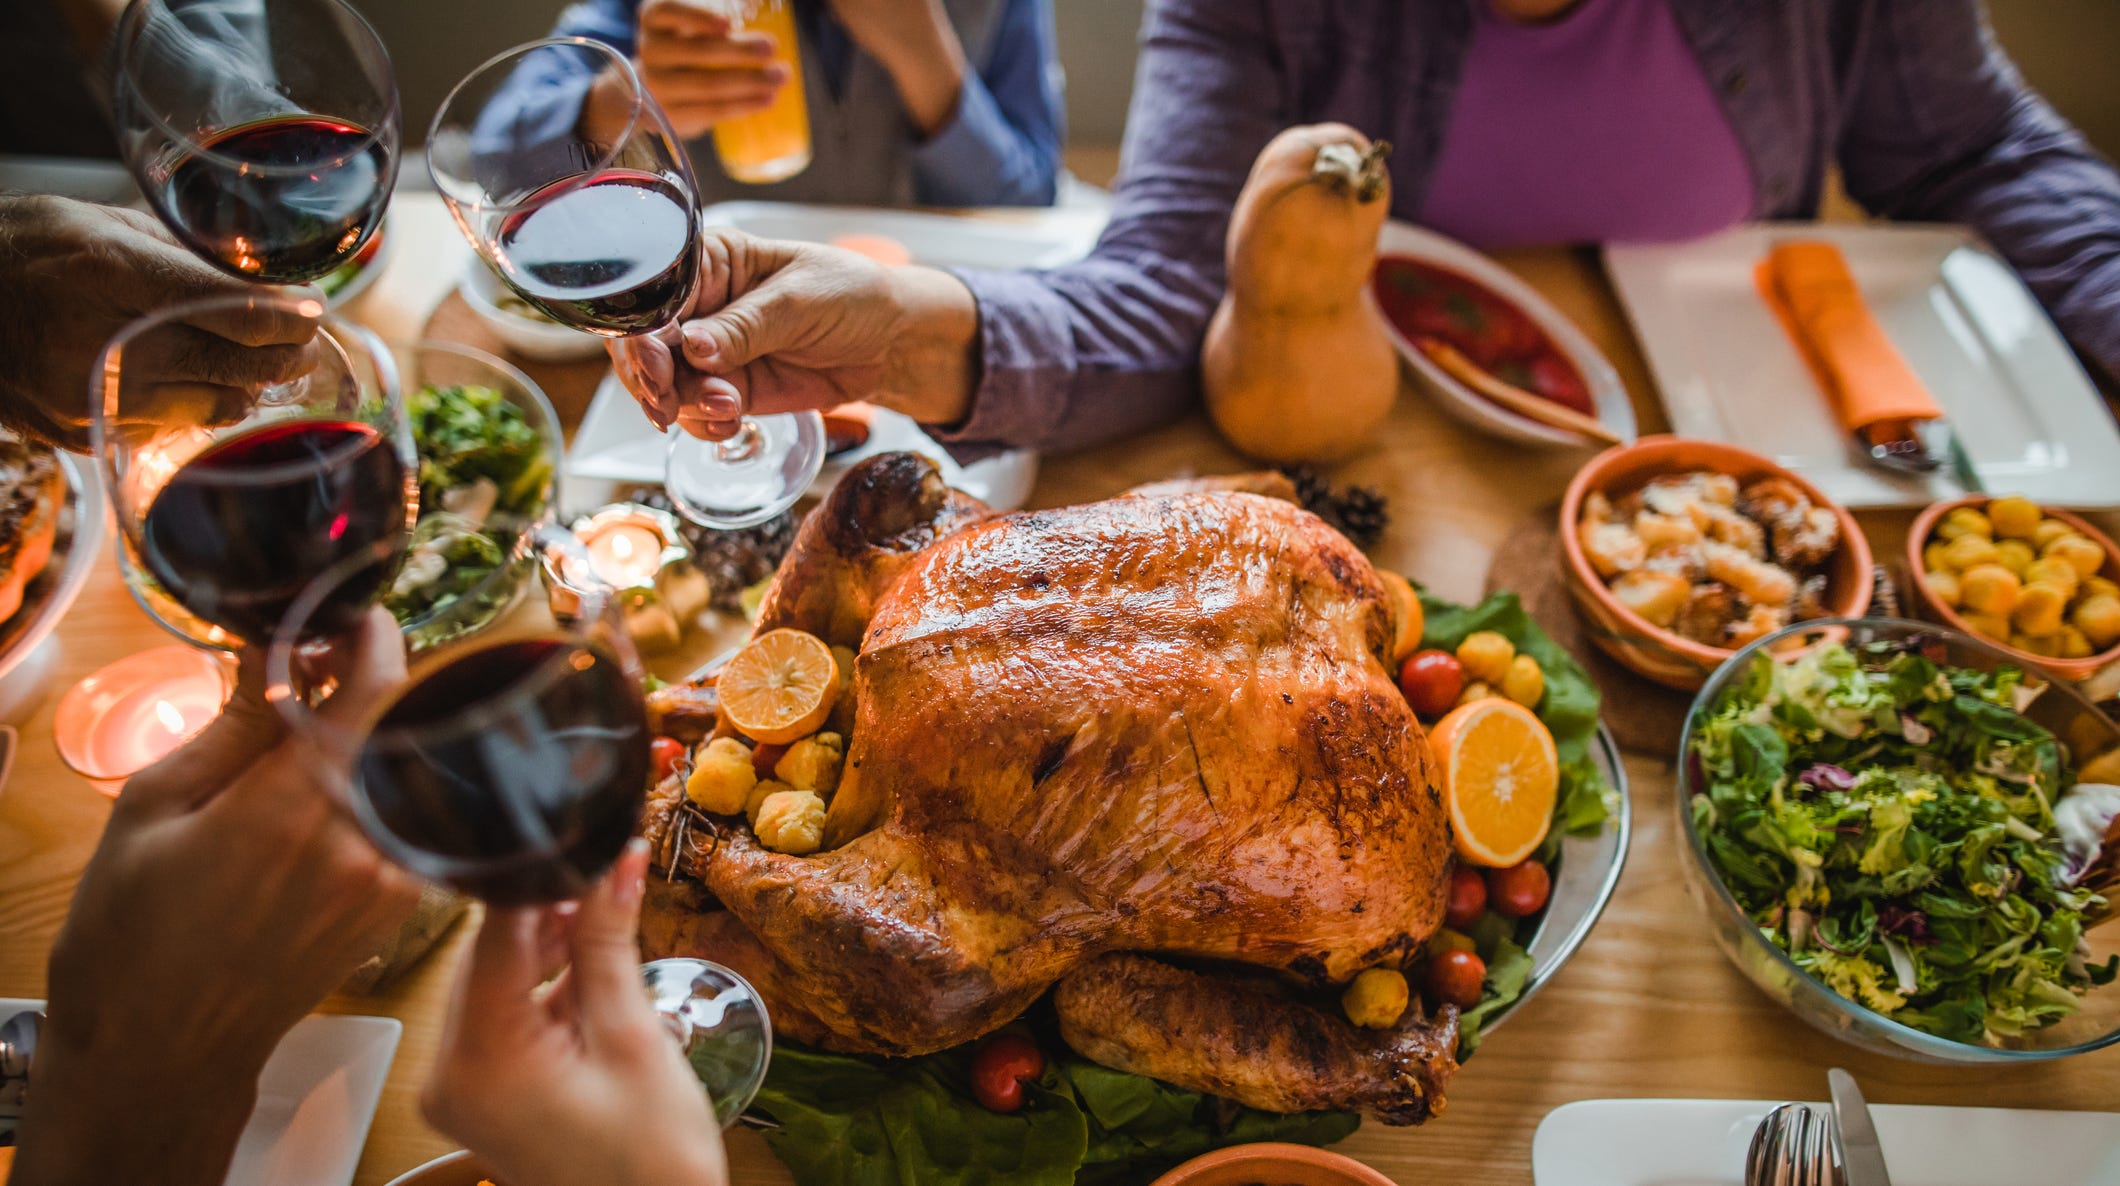 It's not just about the food, it's also about the mood. Here's how to make your Thanksgiving a truly joyous event.